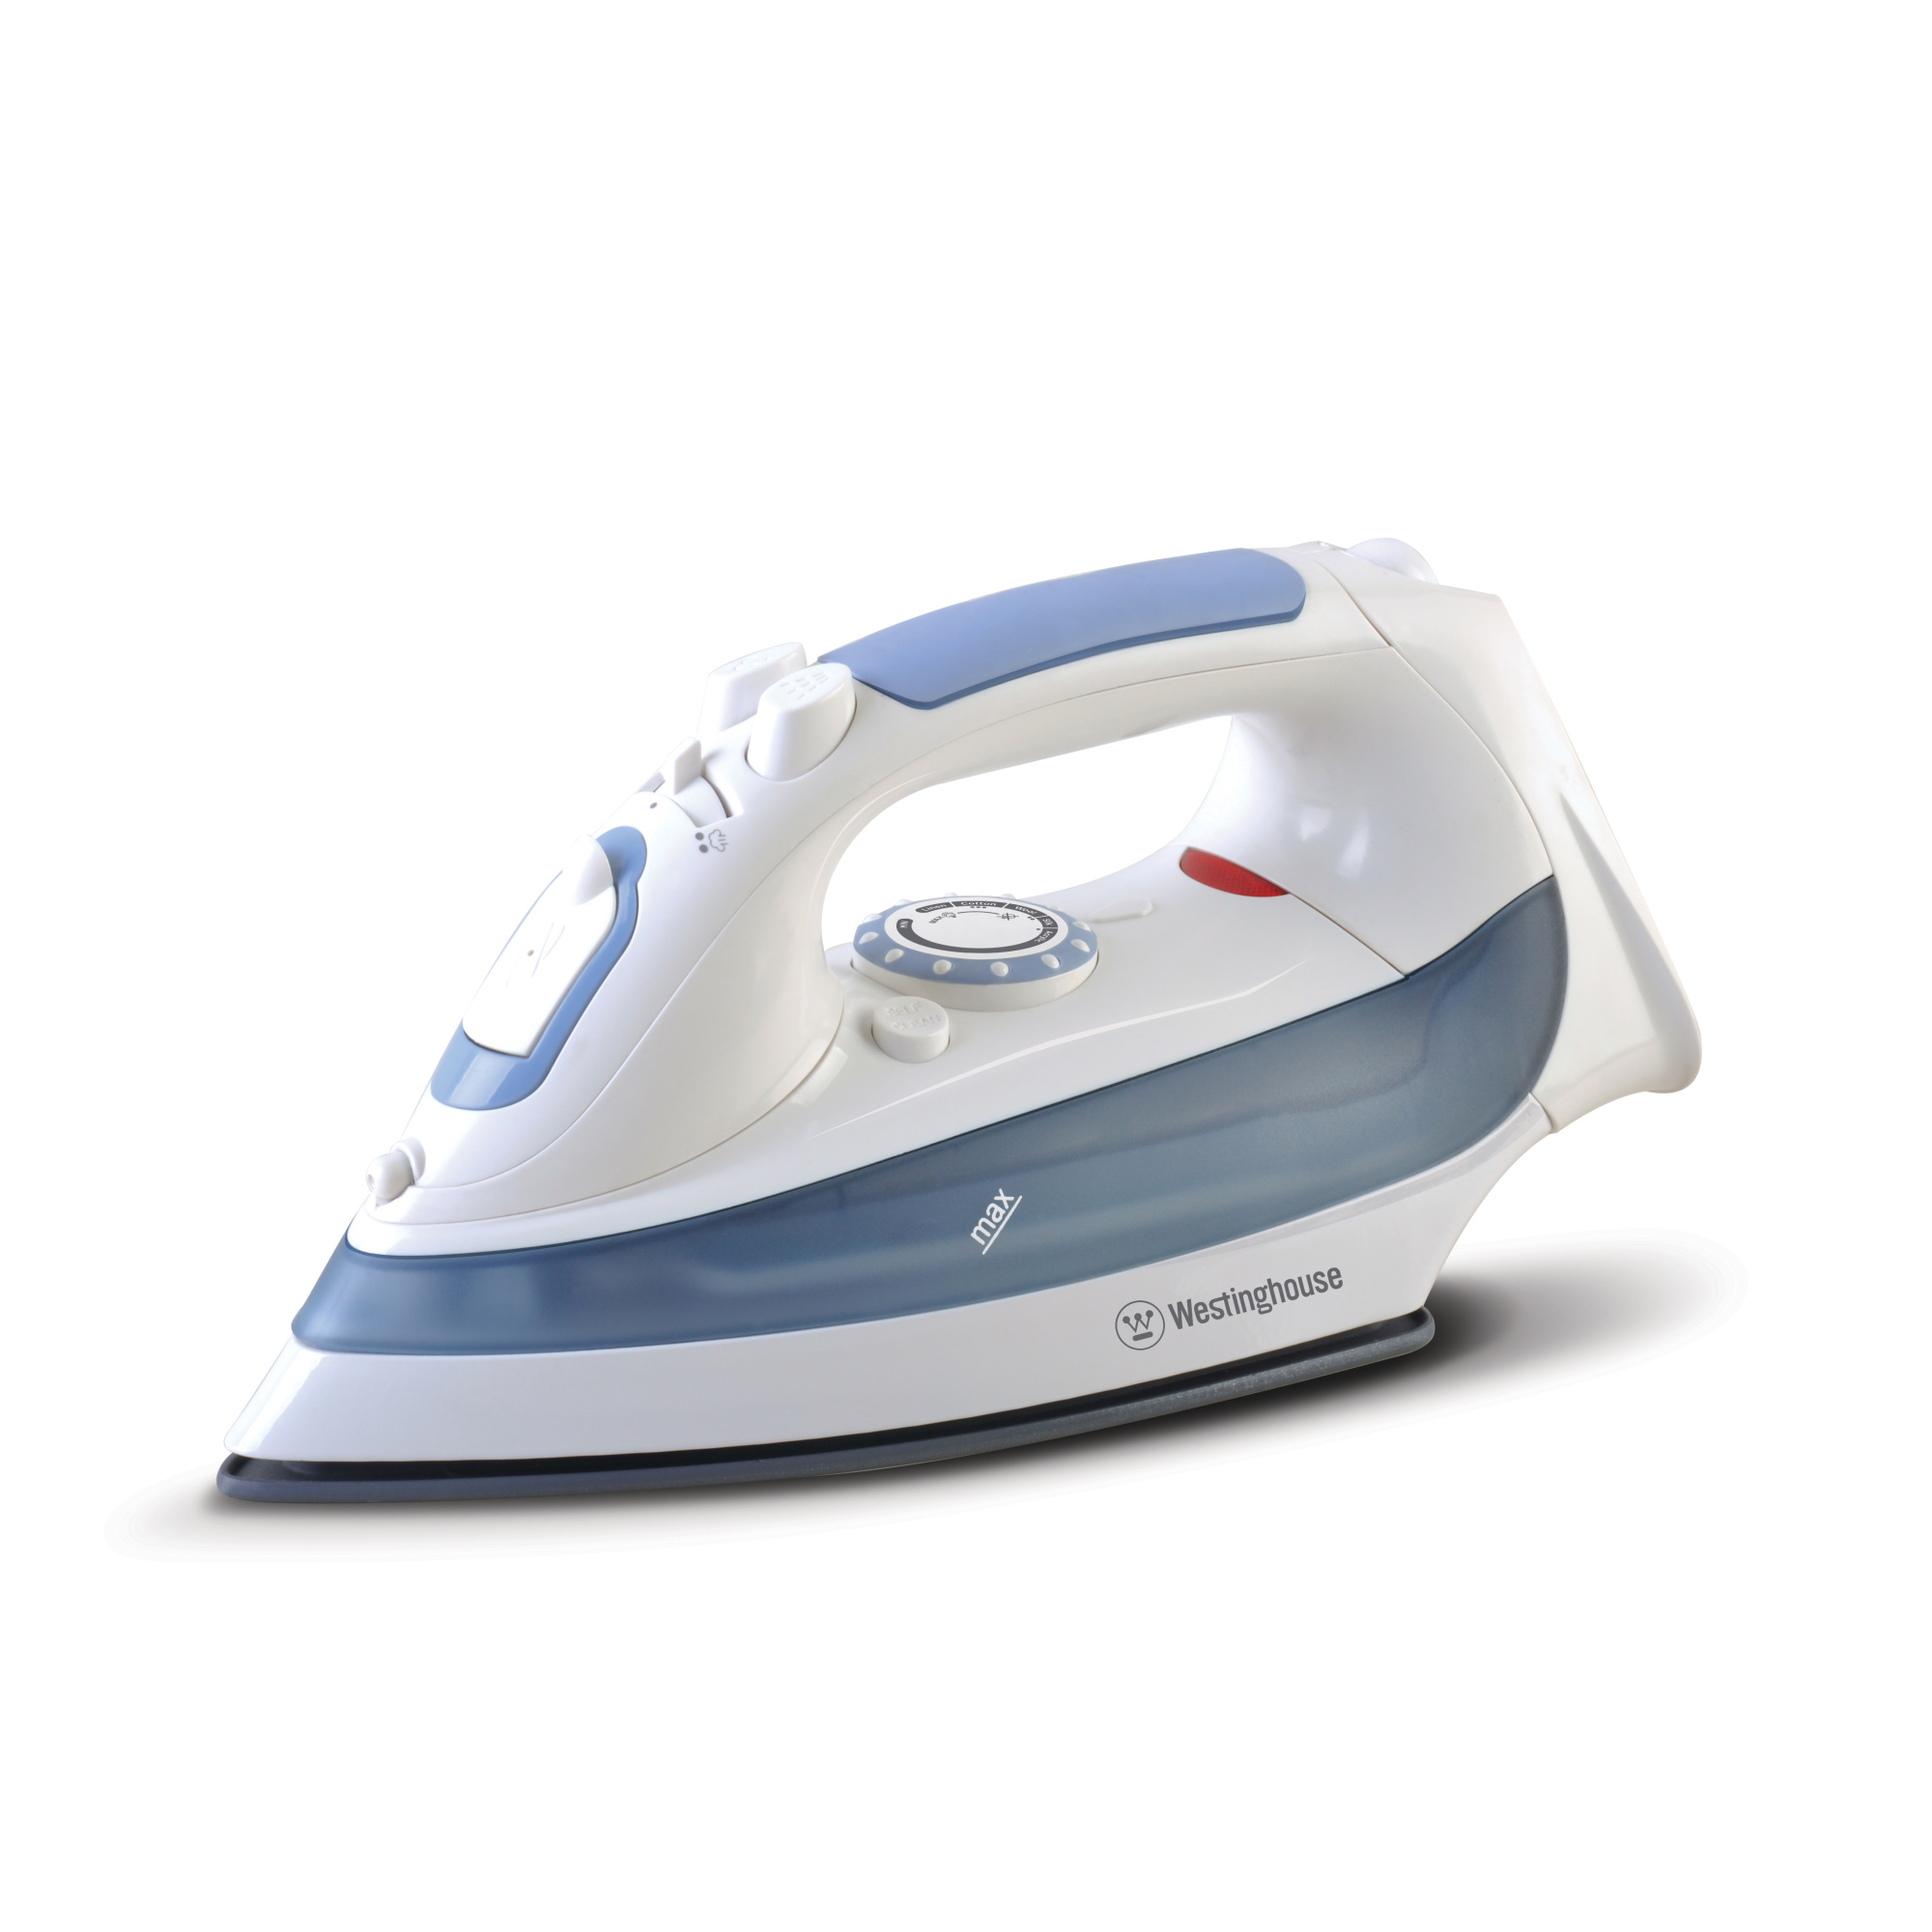 Westinghouse Variable Steam 1200-watt Iron with 3 Way Automatic Shut Off